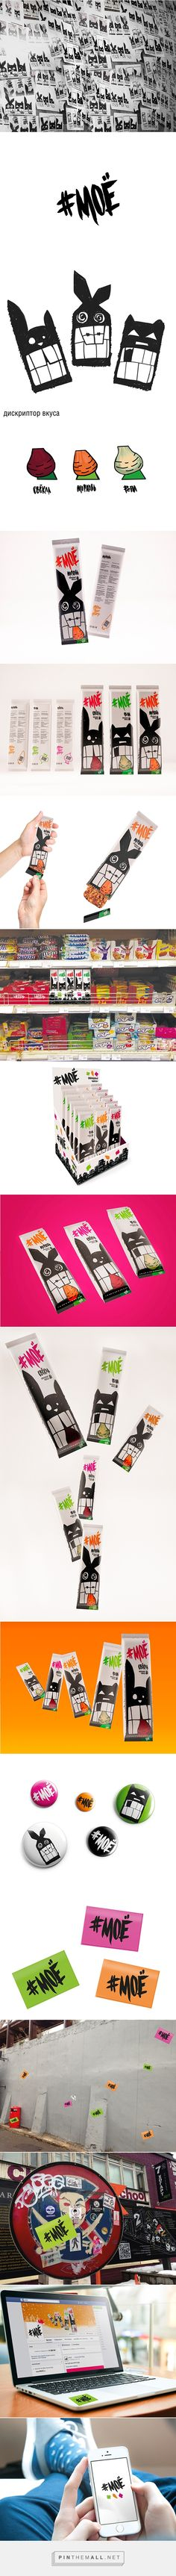 МОЁ упаковка для овощных батончиков on Behance Your daily packaging smile : ) Weird creatures you might turn into if you are hungry curated by Packaging Diva PD.